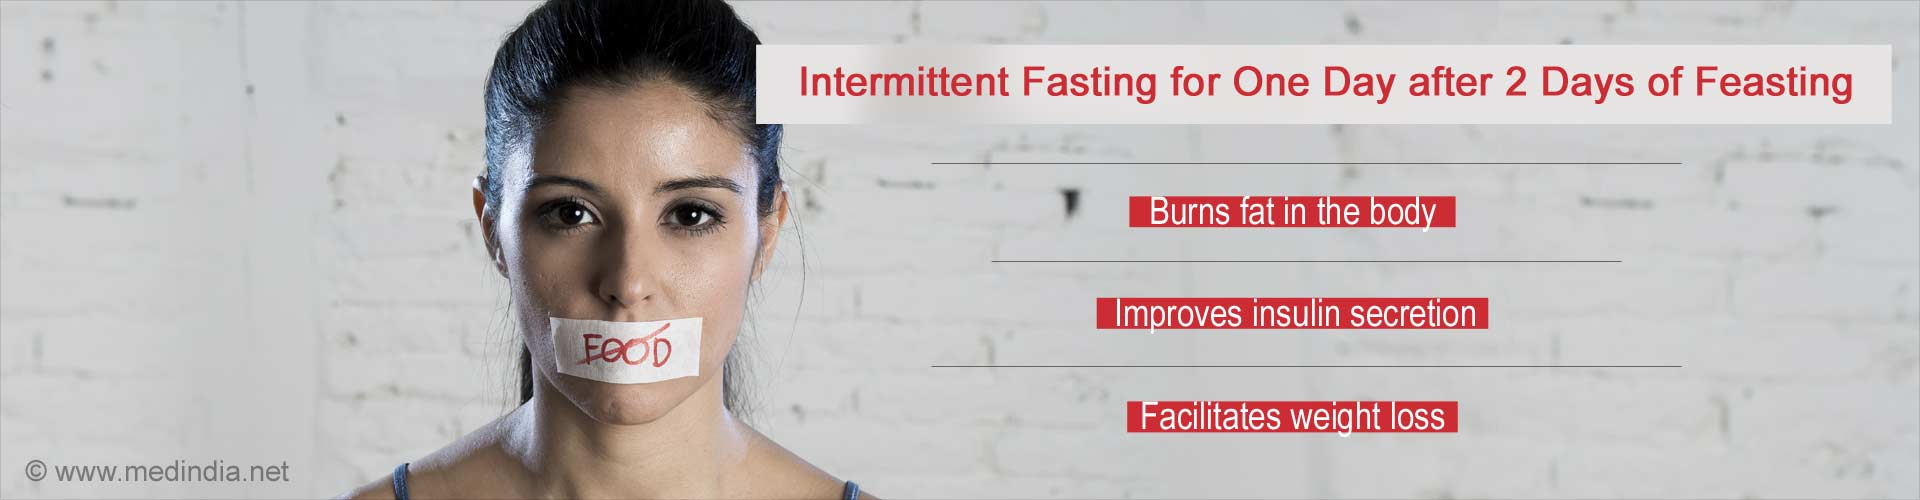 Fasting Once in Every Two Days can Help lose Weight